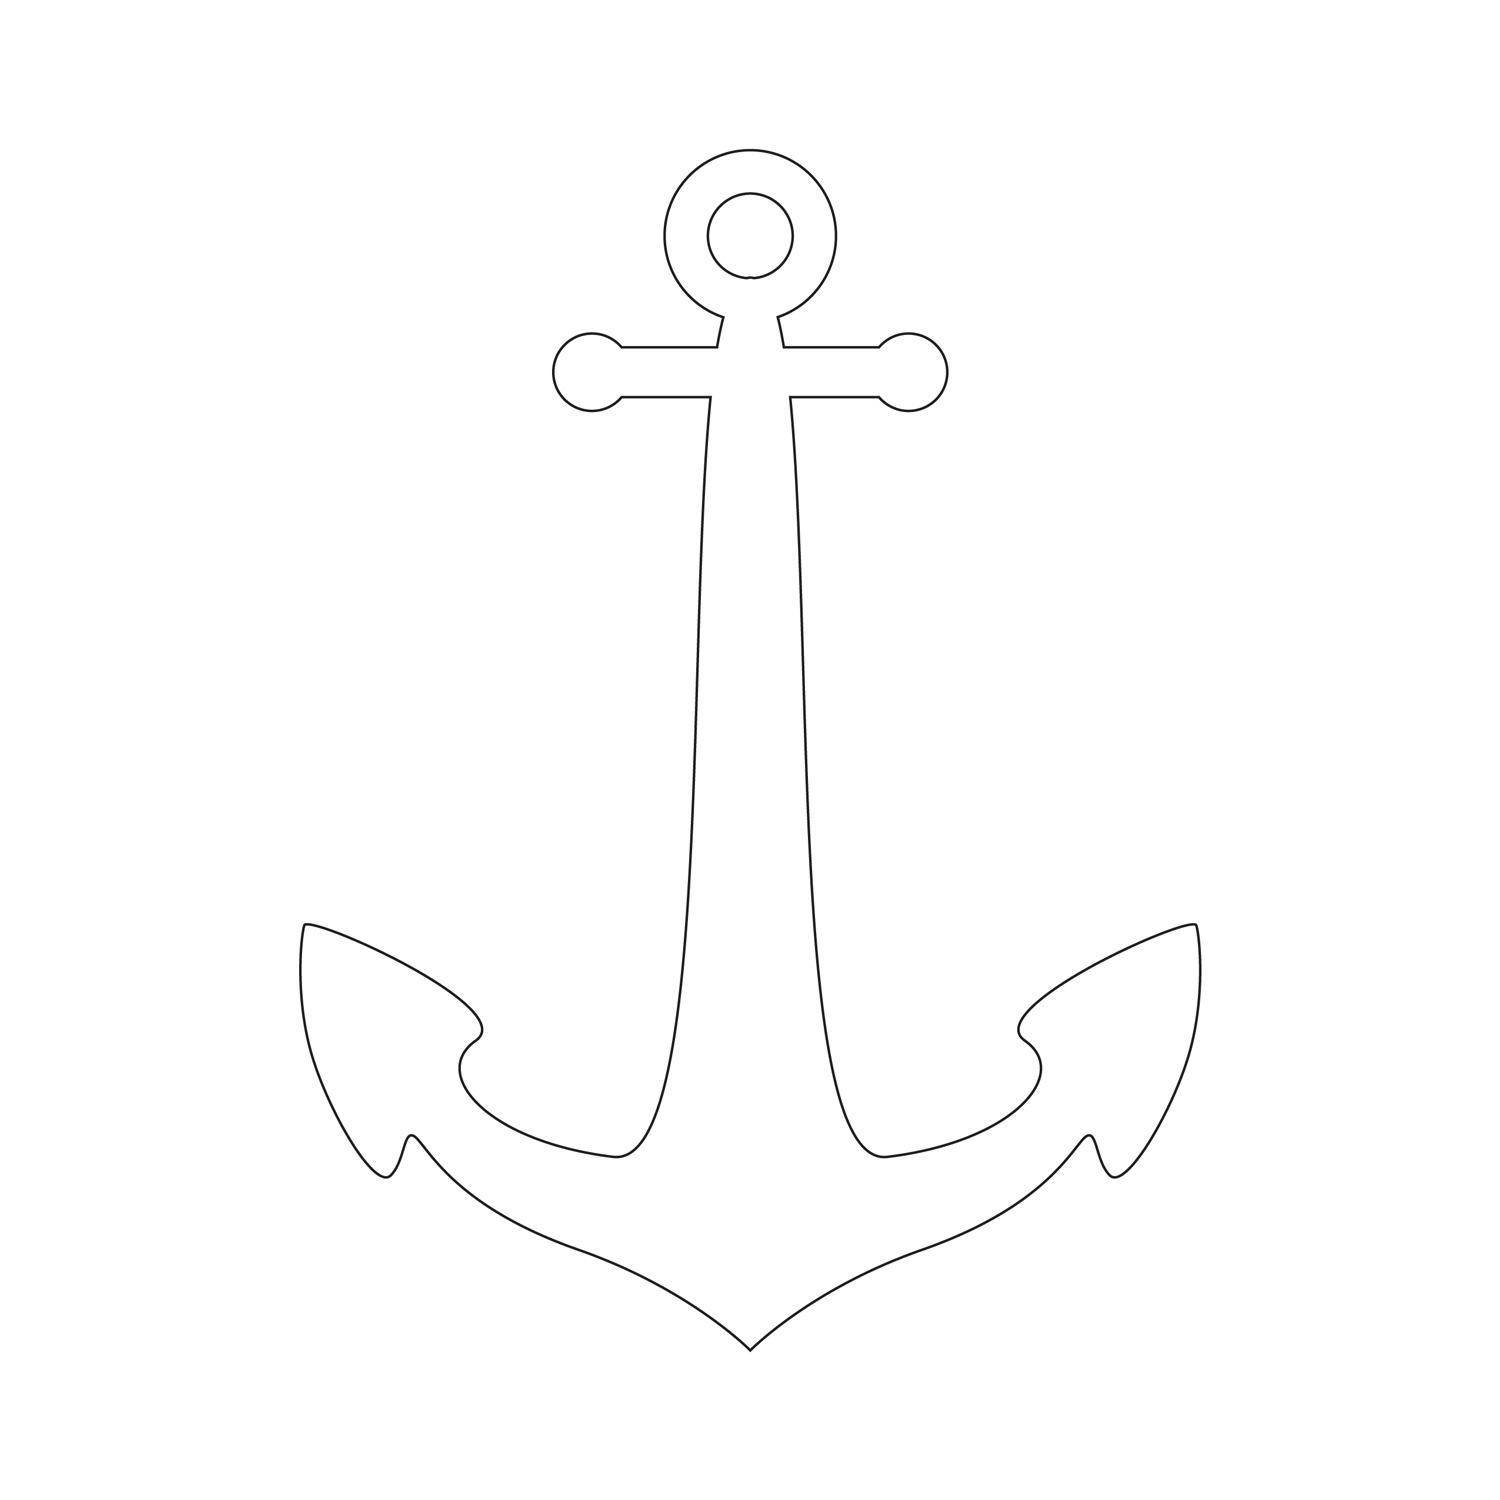 7 Images of Anchor Stencil Printable